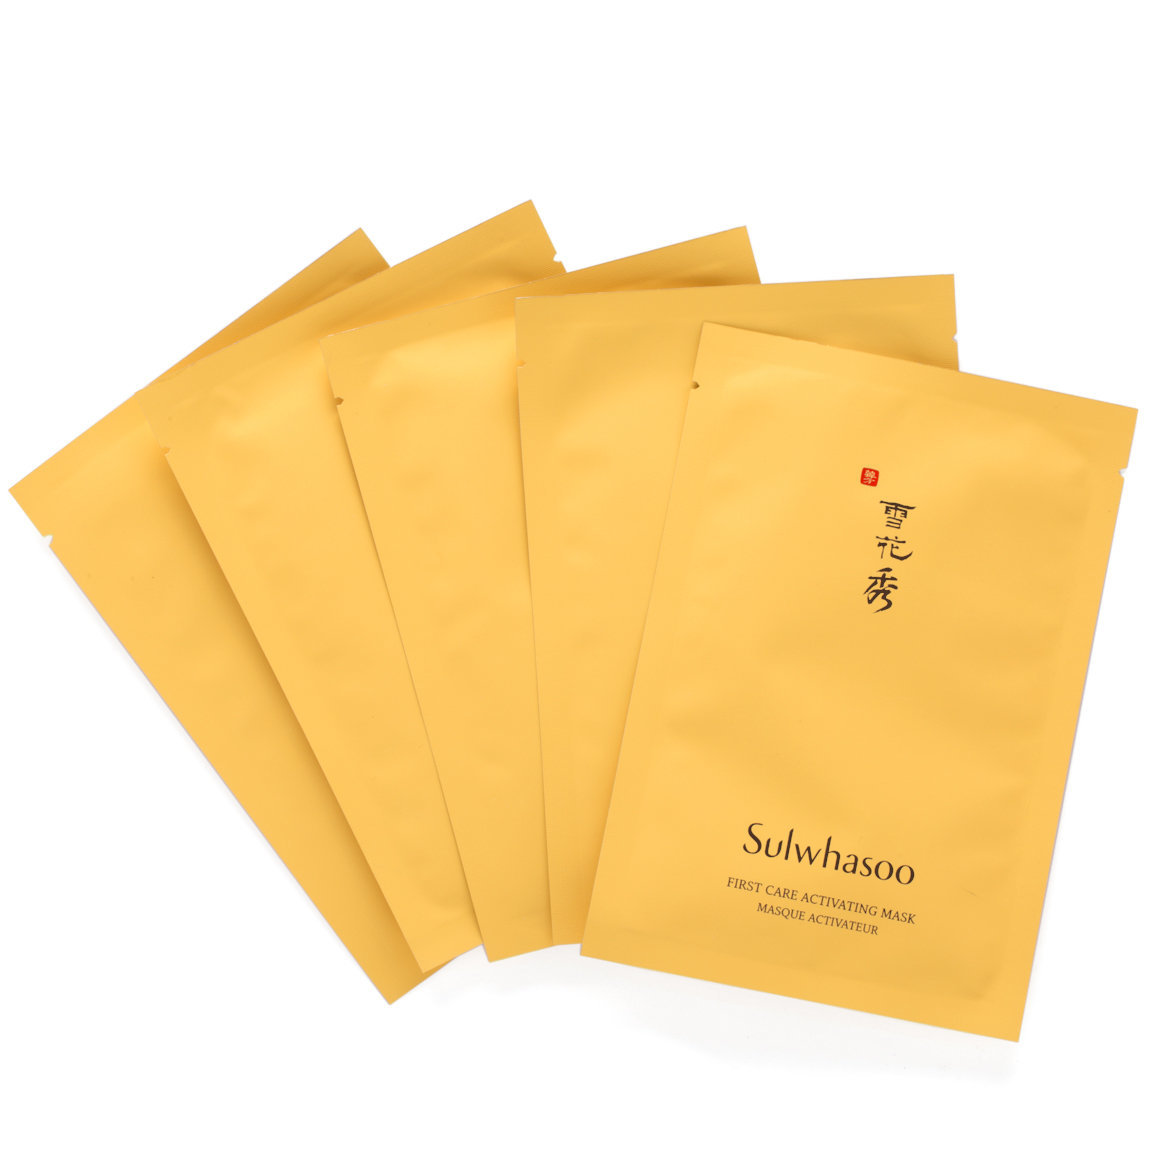 Sulwhasoo First Care Activating Mask product swatch.